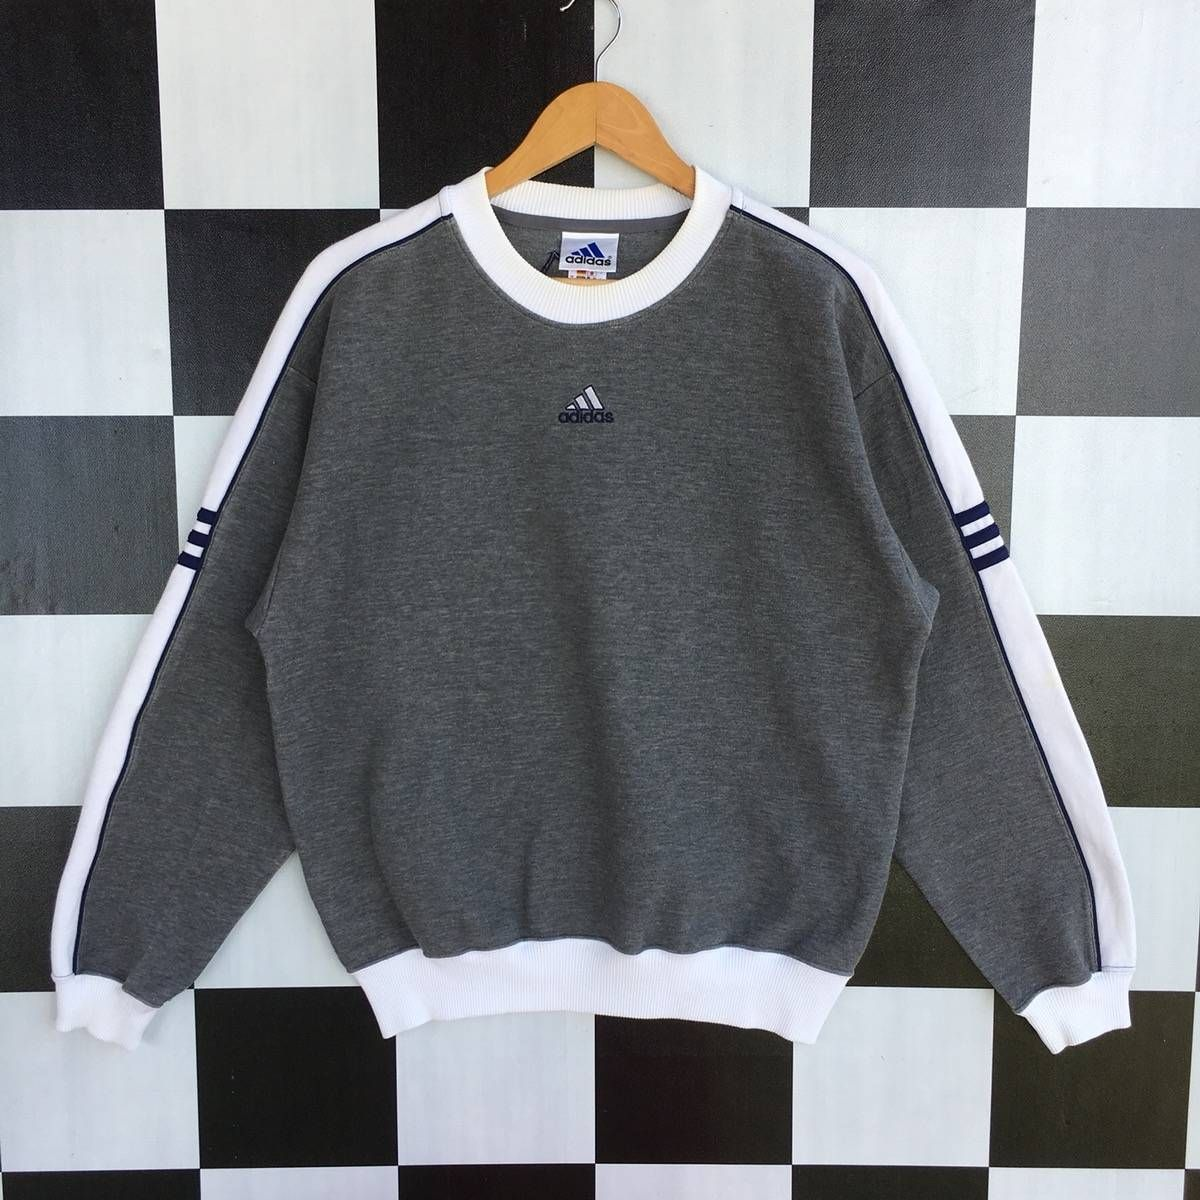 Adidas Vintage Adidas Equipment Embroidery Logo Sweatshirt 90s Grailed Vintage Adidas Sweatshirt Vintage Sportswear Clothes [ 1200 x 1200 Pixel ]